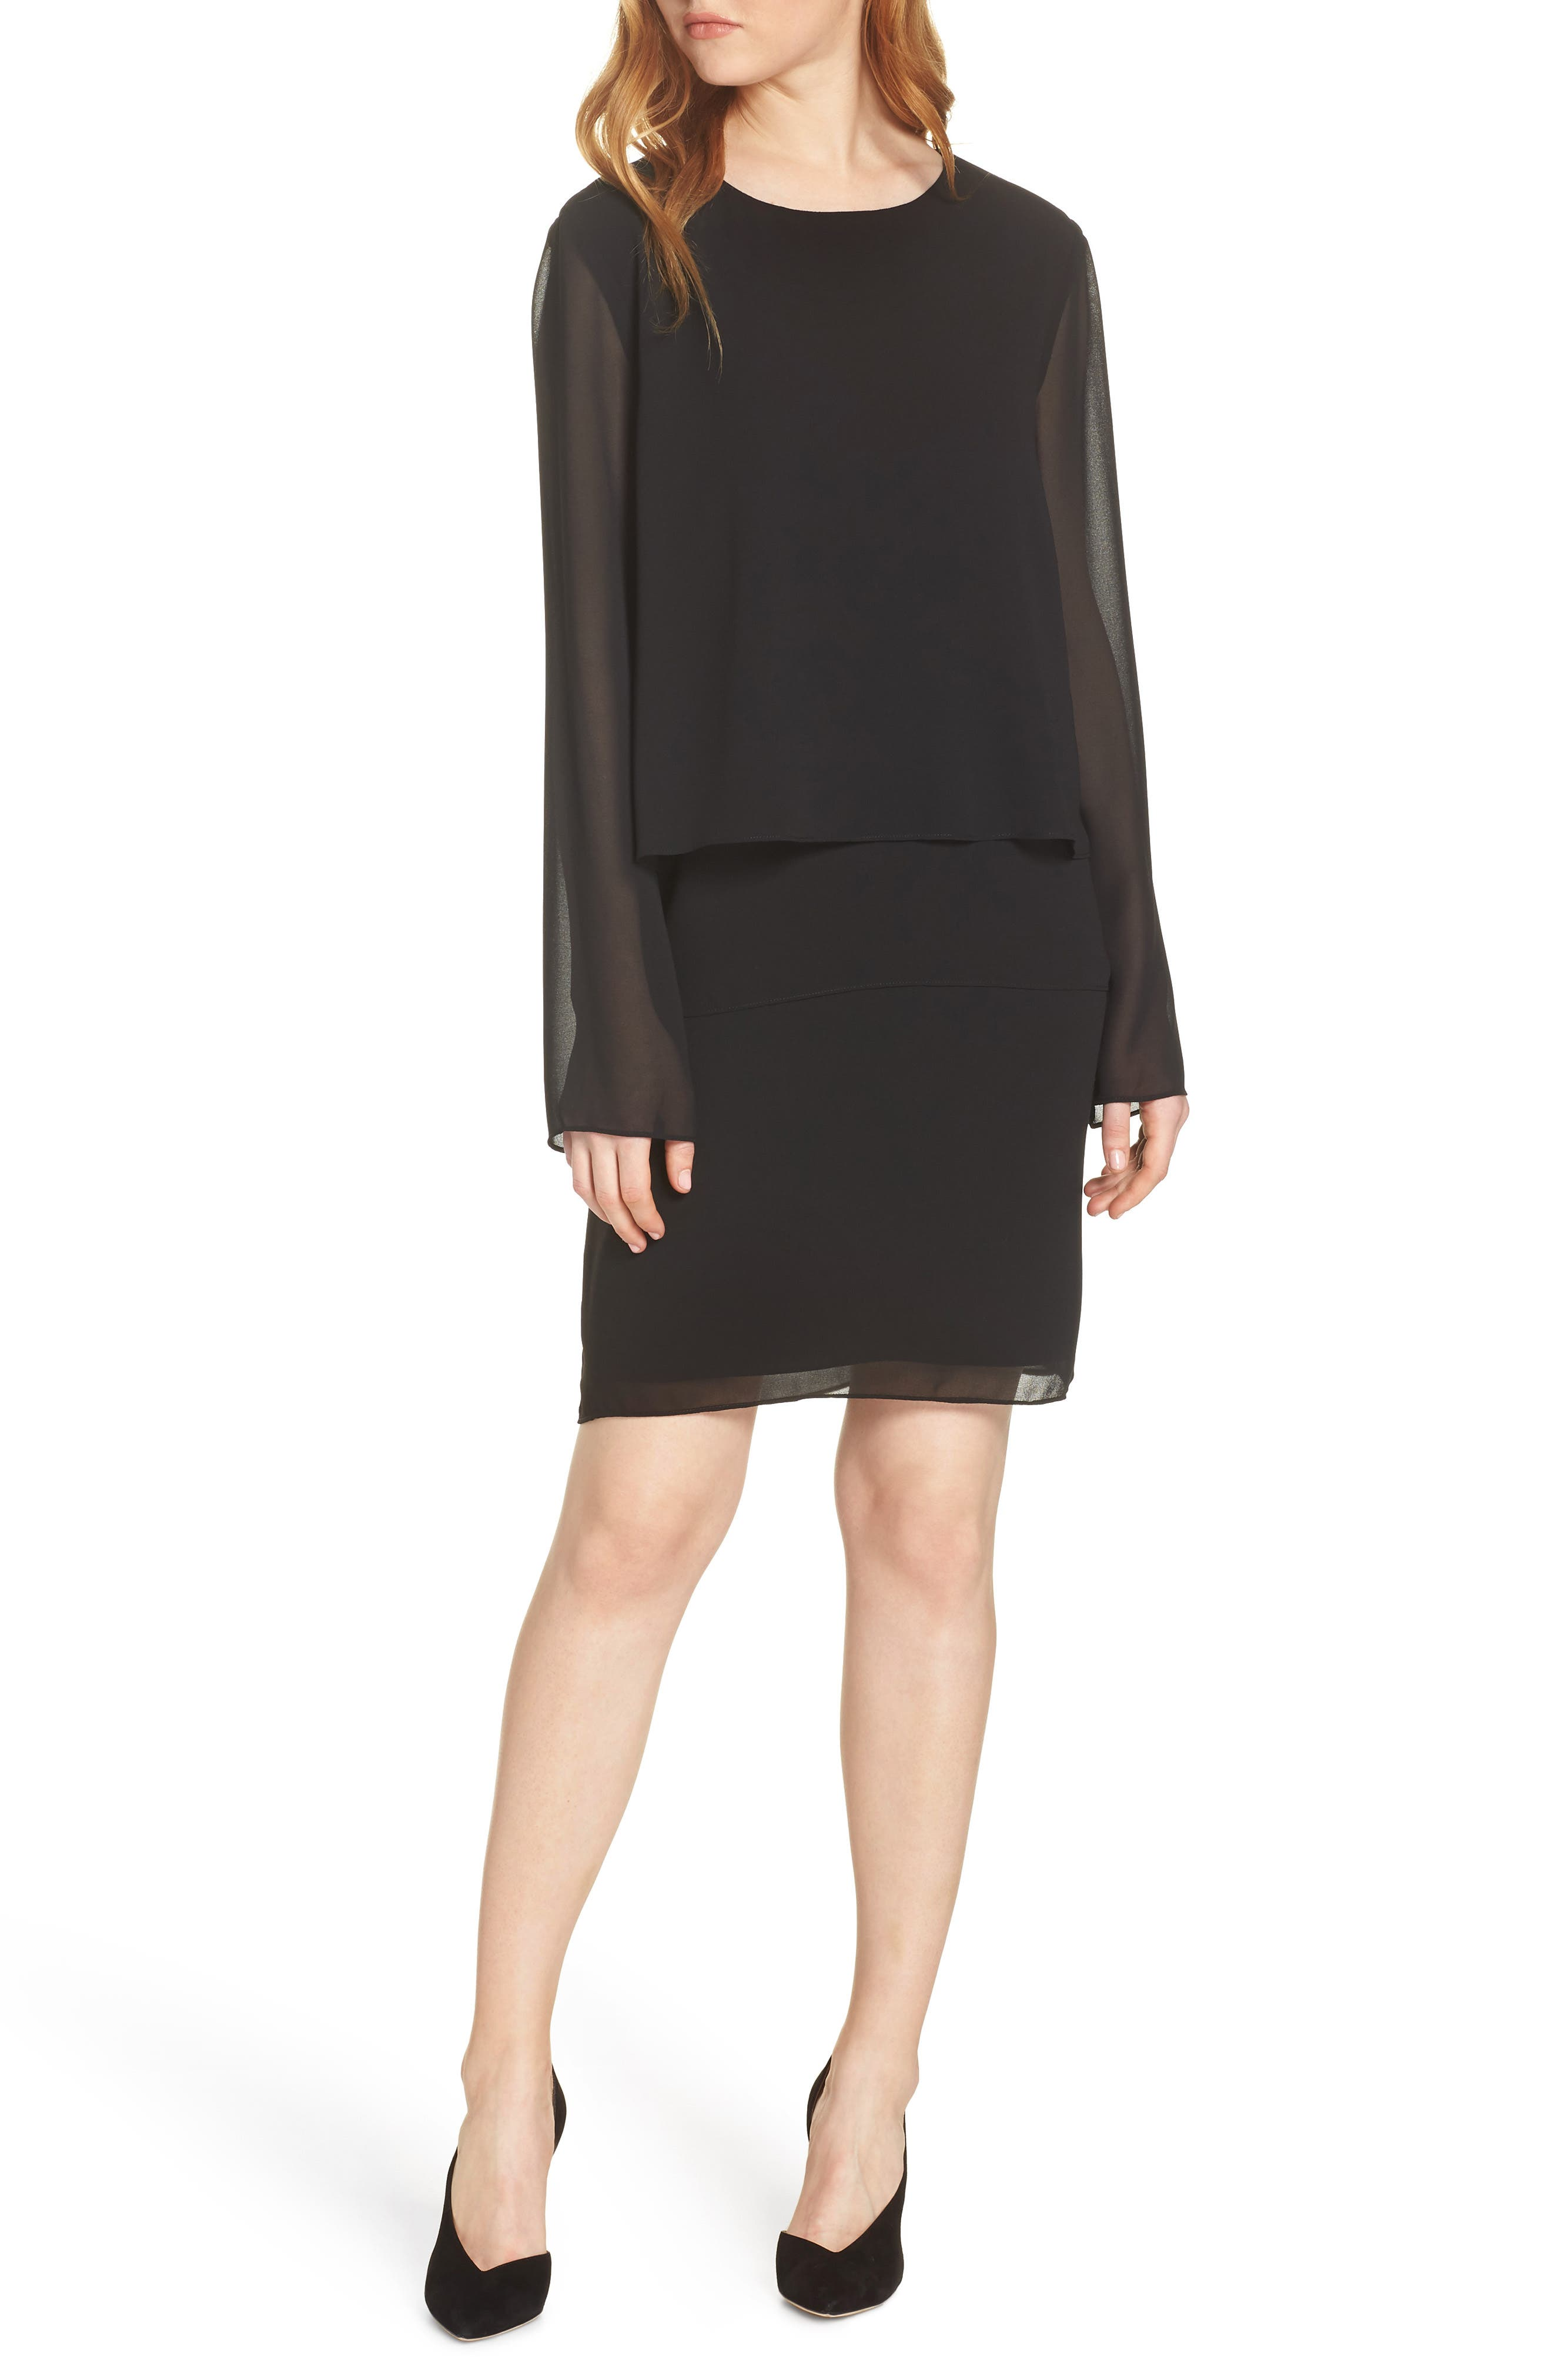 CHARLES HENRY Layered Popover Chiffon Dress in Black